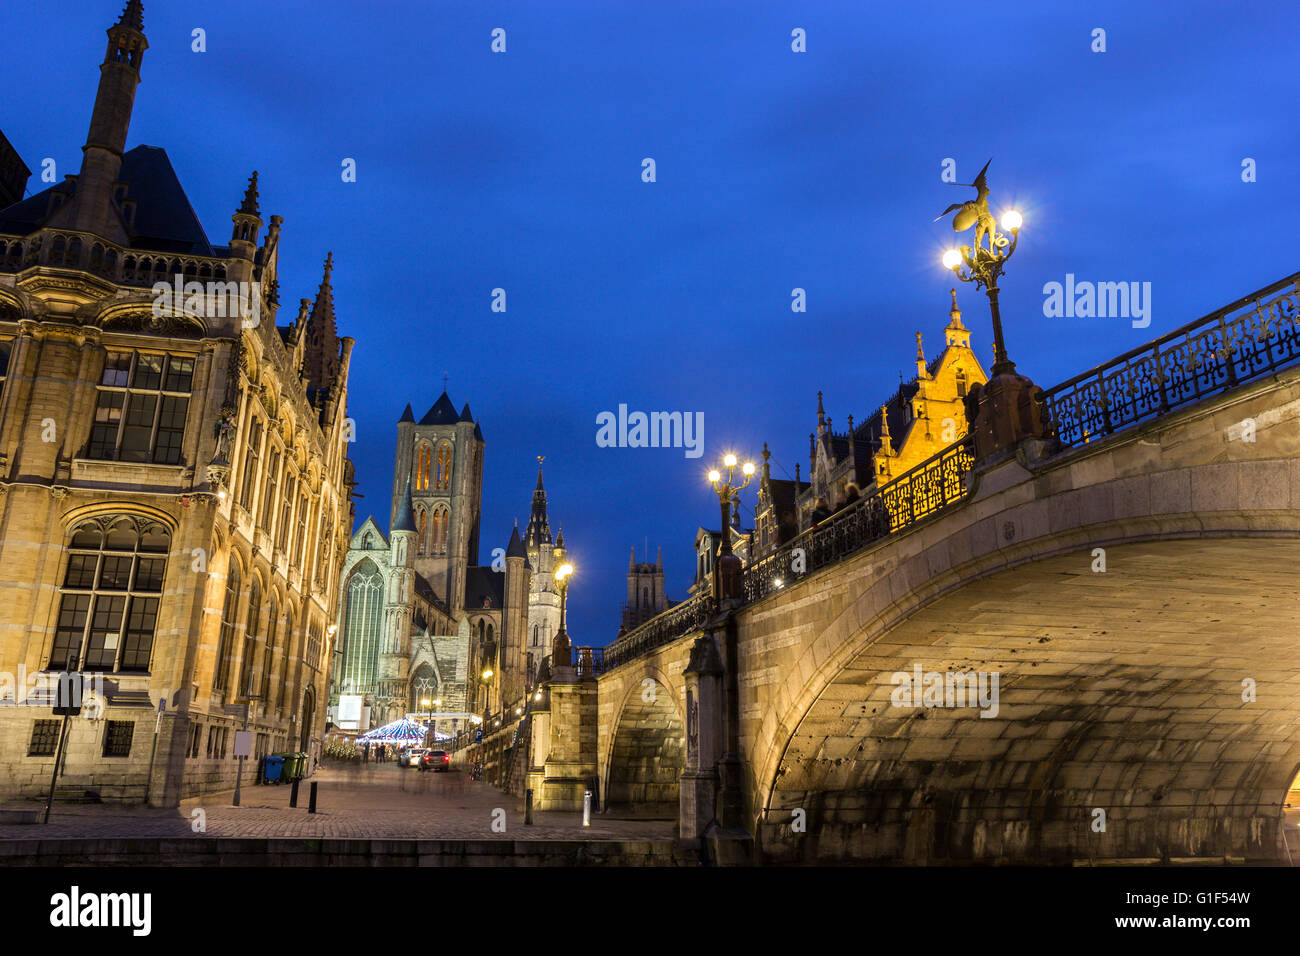 Historical centre of Ghent with old post office, Saint-Nicholas Church and Belfry during Christmas - Stock Image